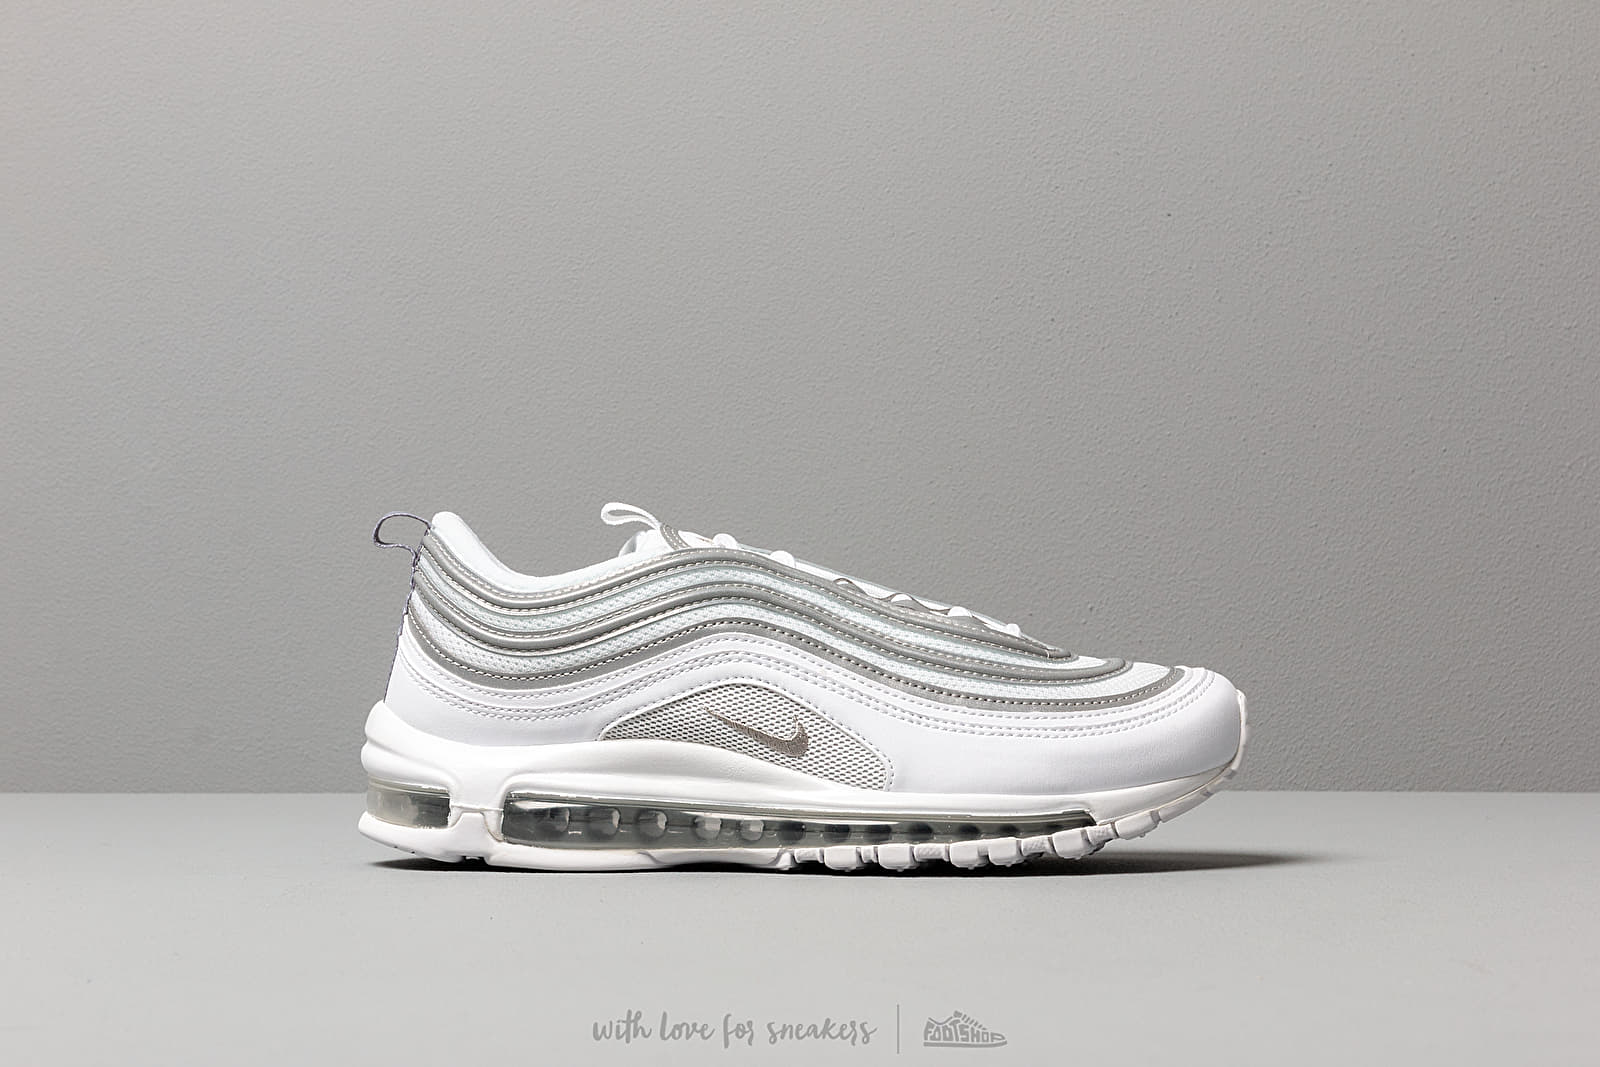 c4f8df70 Nike Air Max 97 White/ Reflect Silver-Wolf Grey at a great price 169